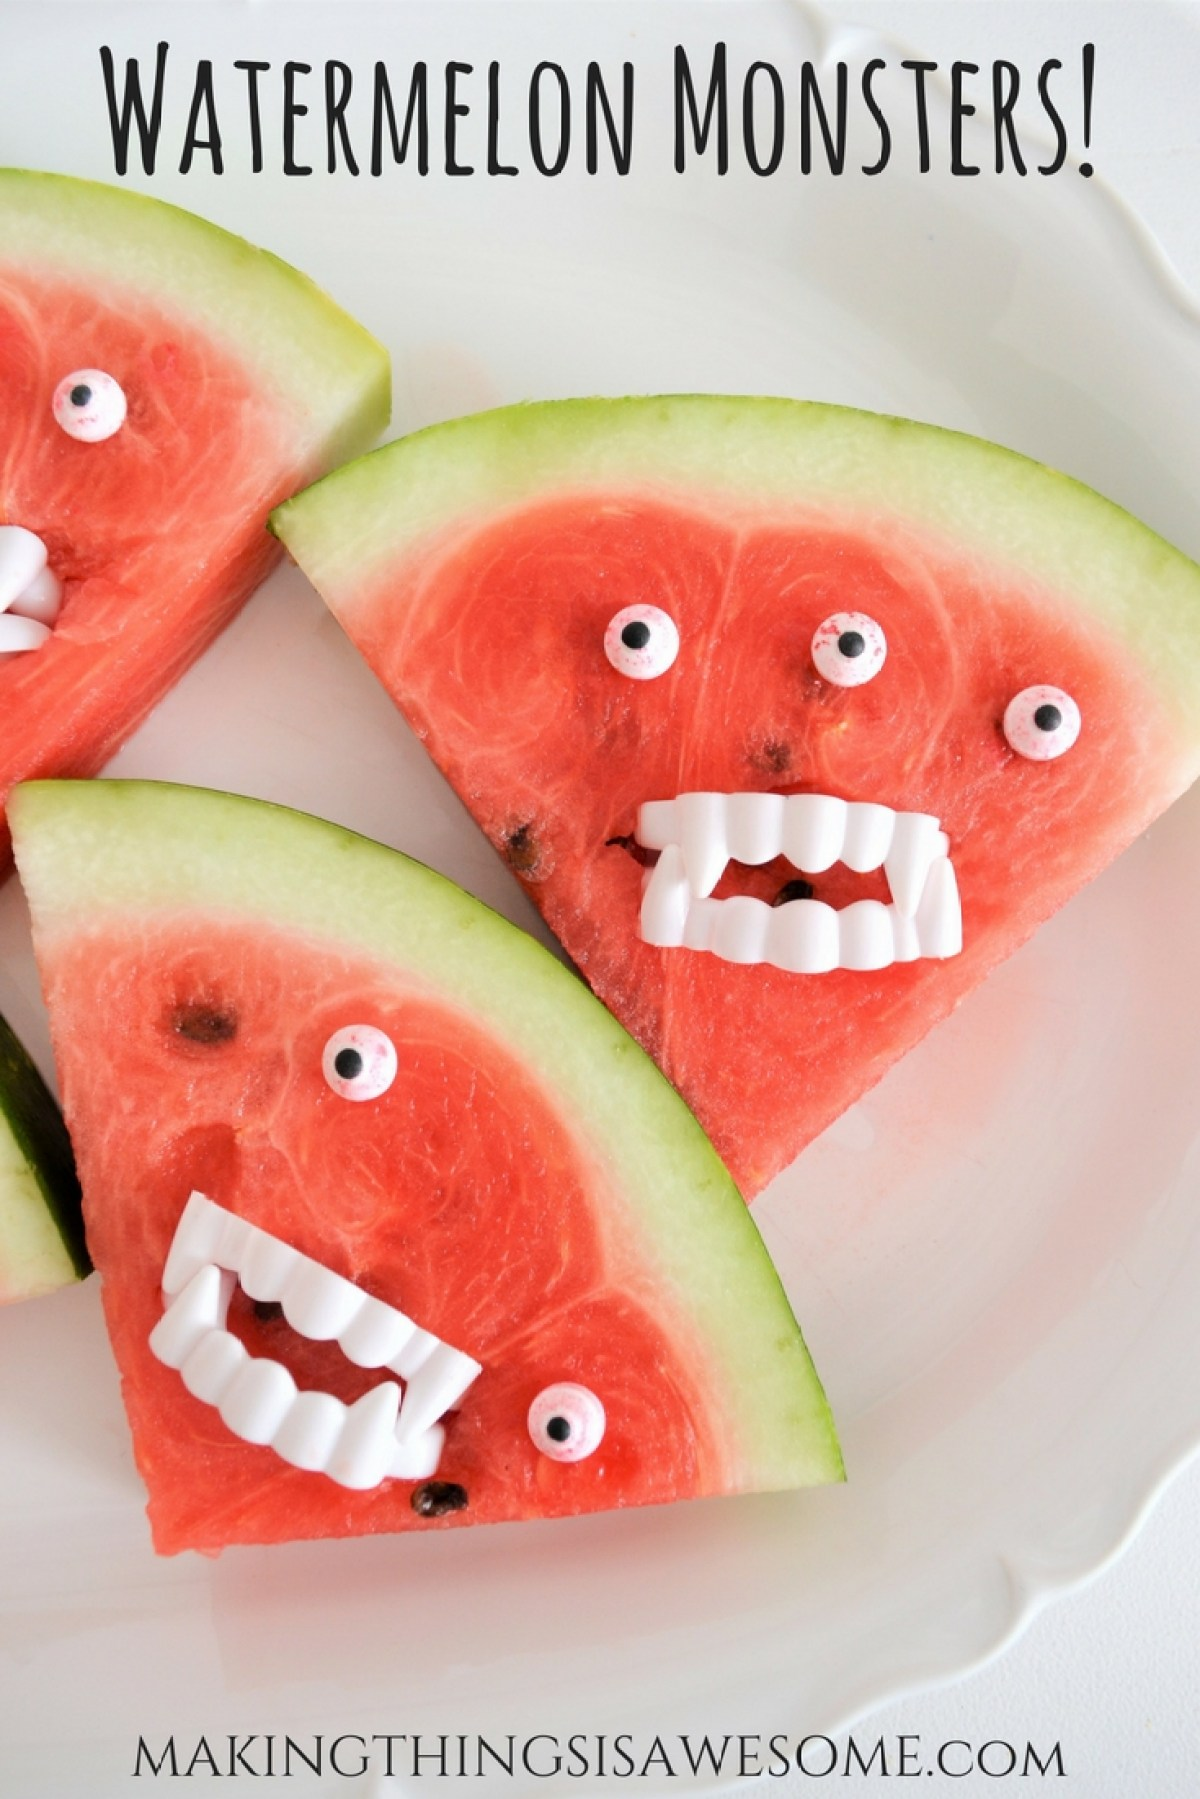 Watermelon Monsters!